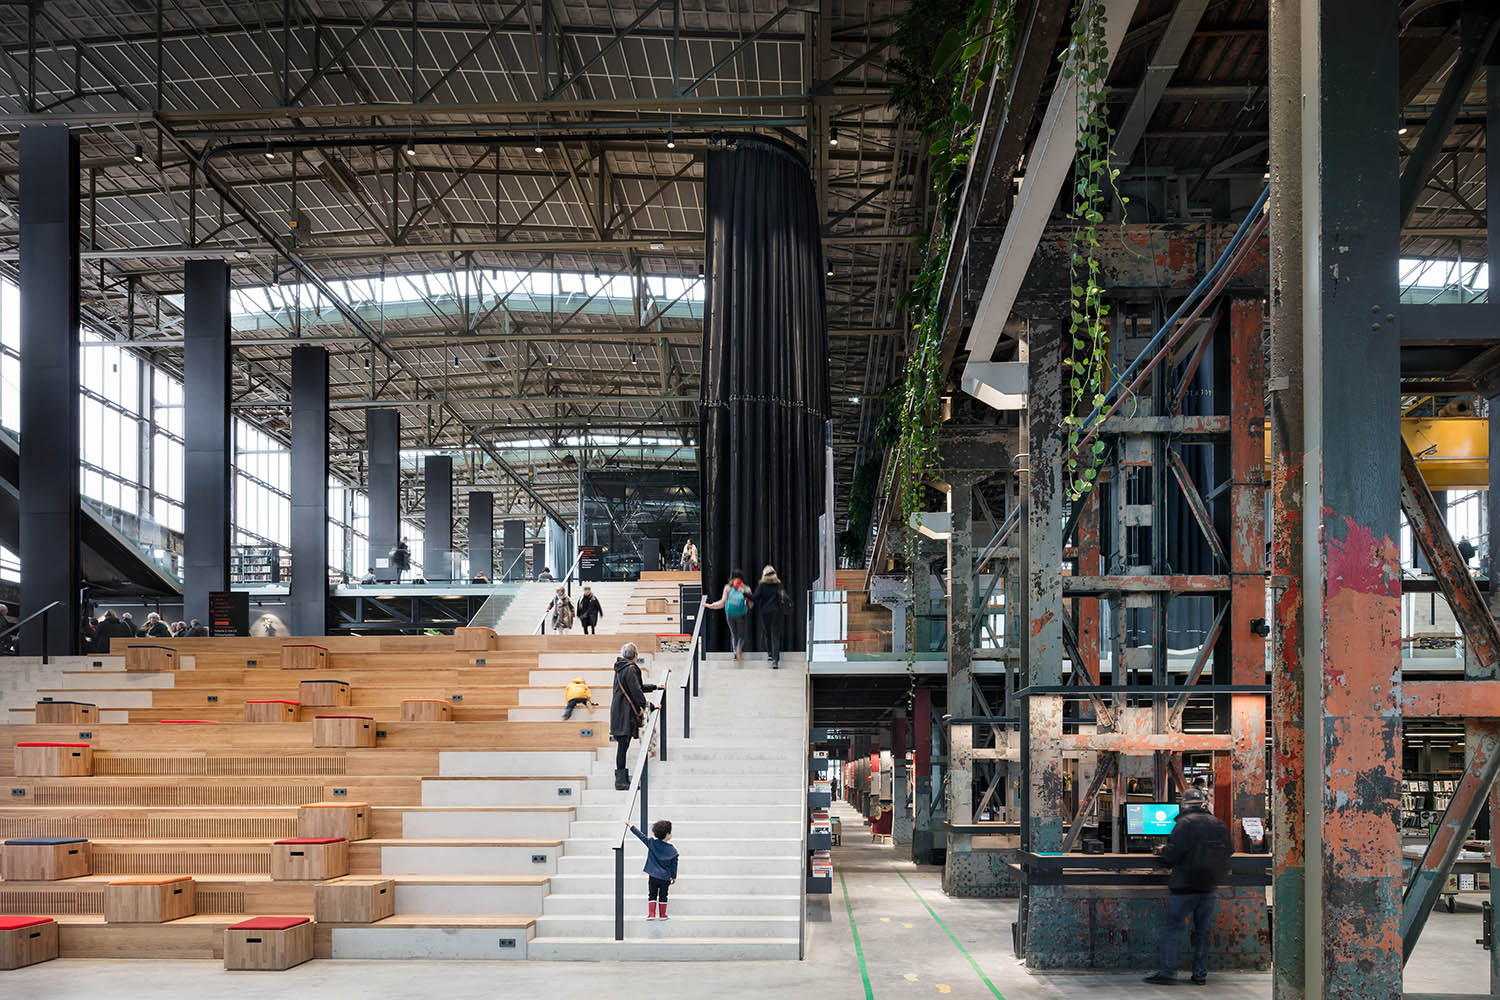 The central staircase is functional but also part of the program. Stijn Bollaert